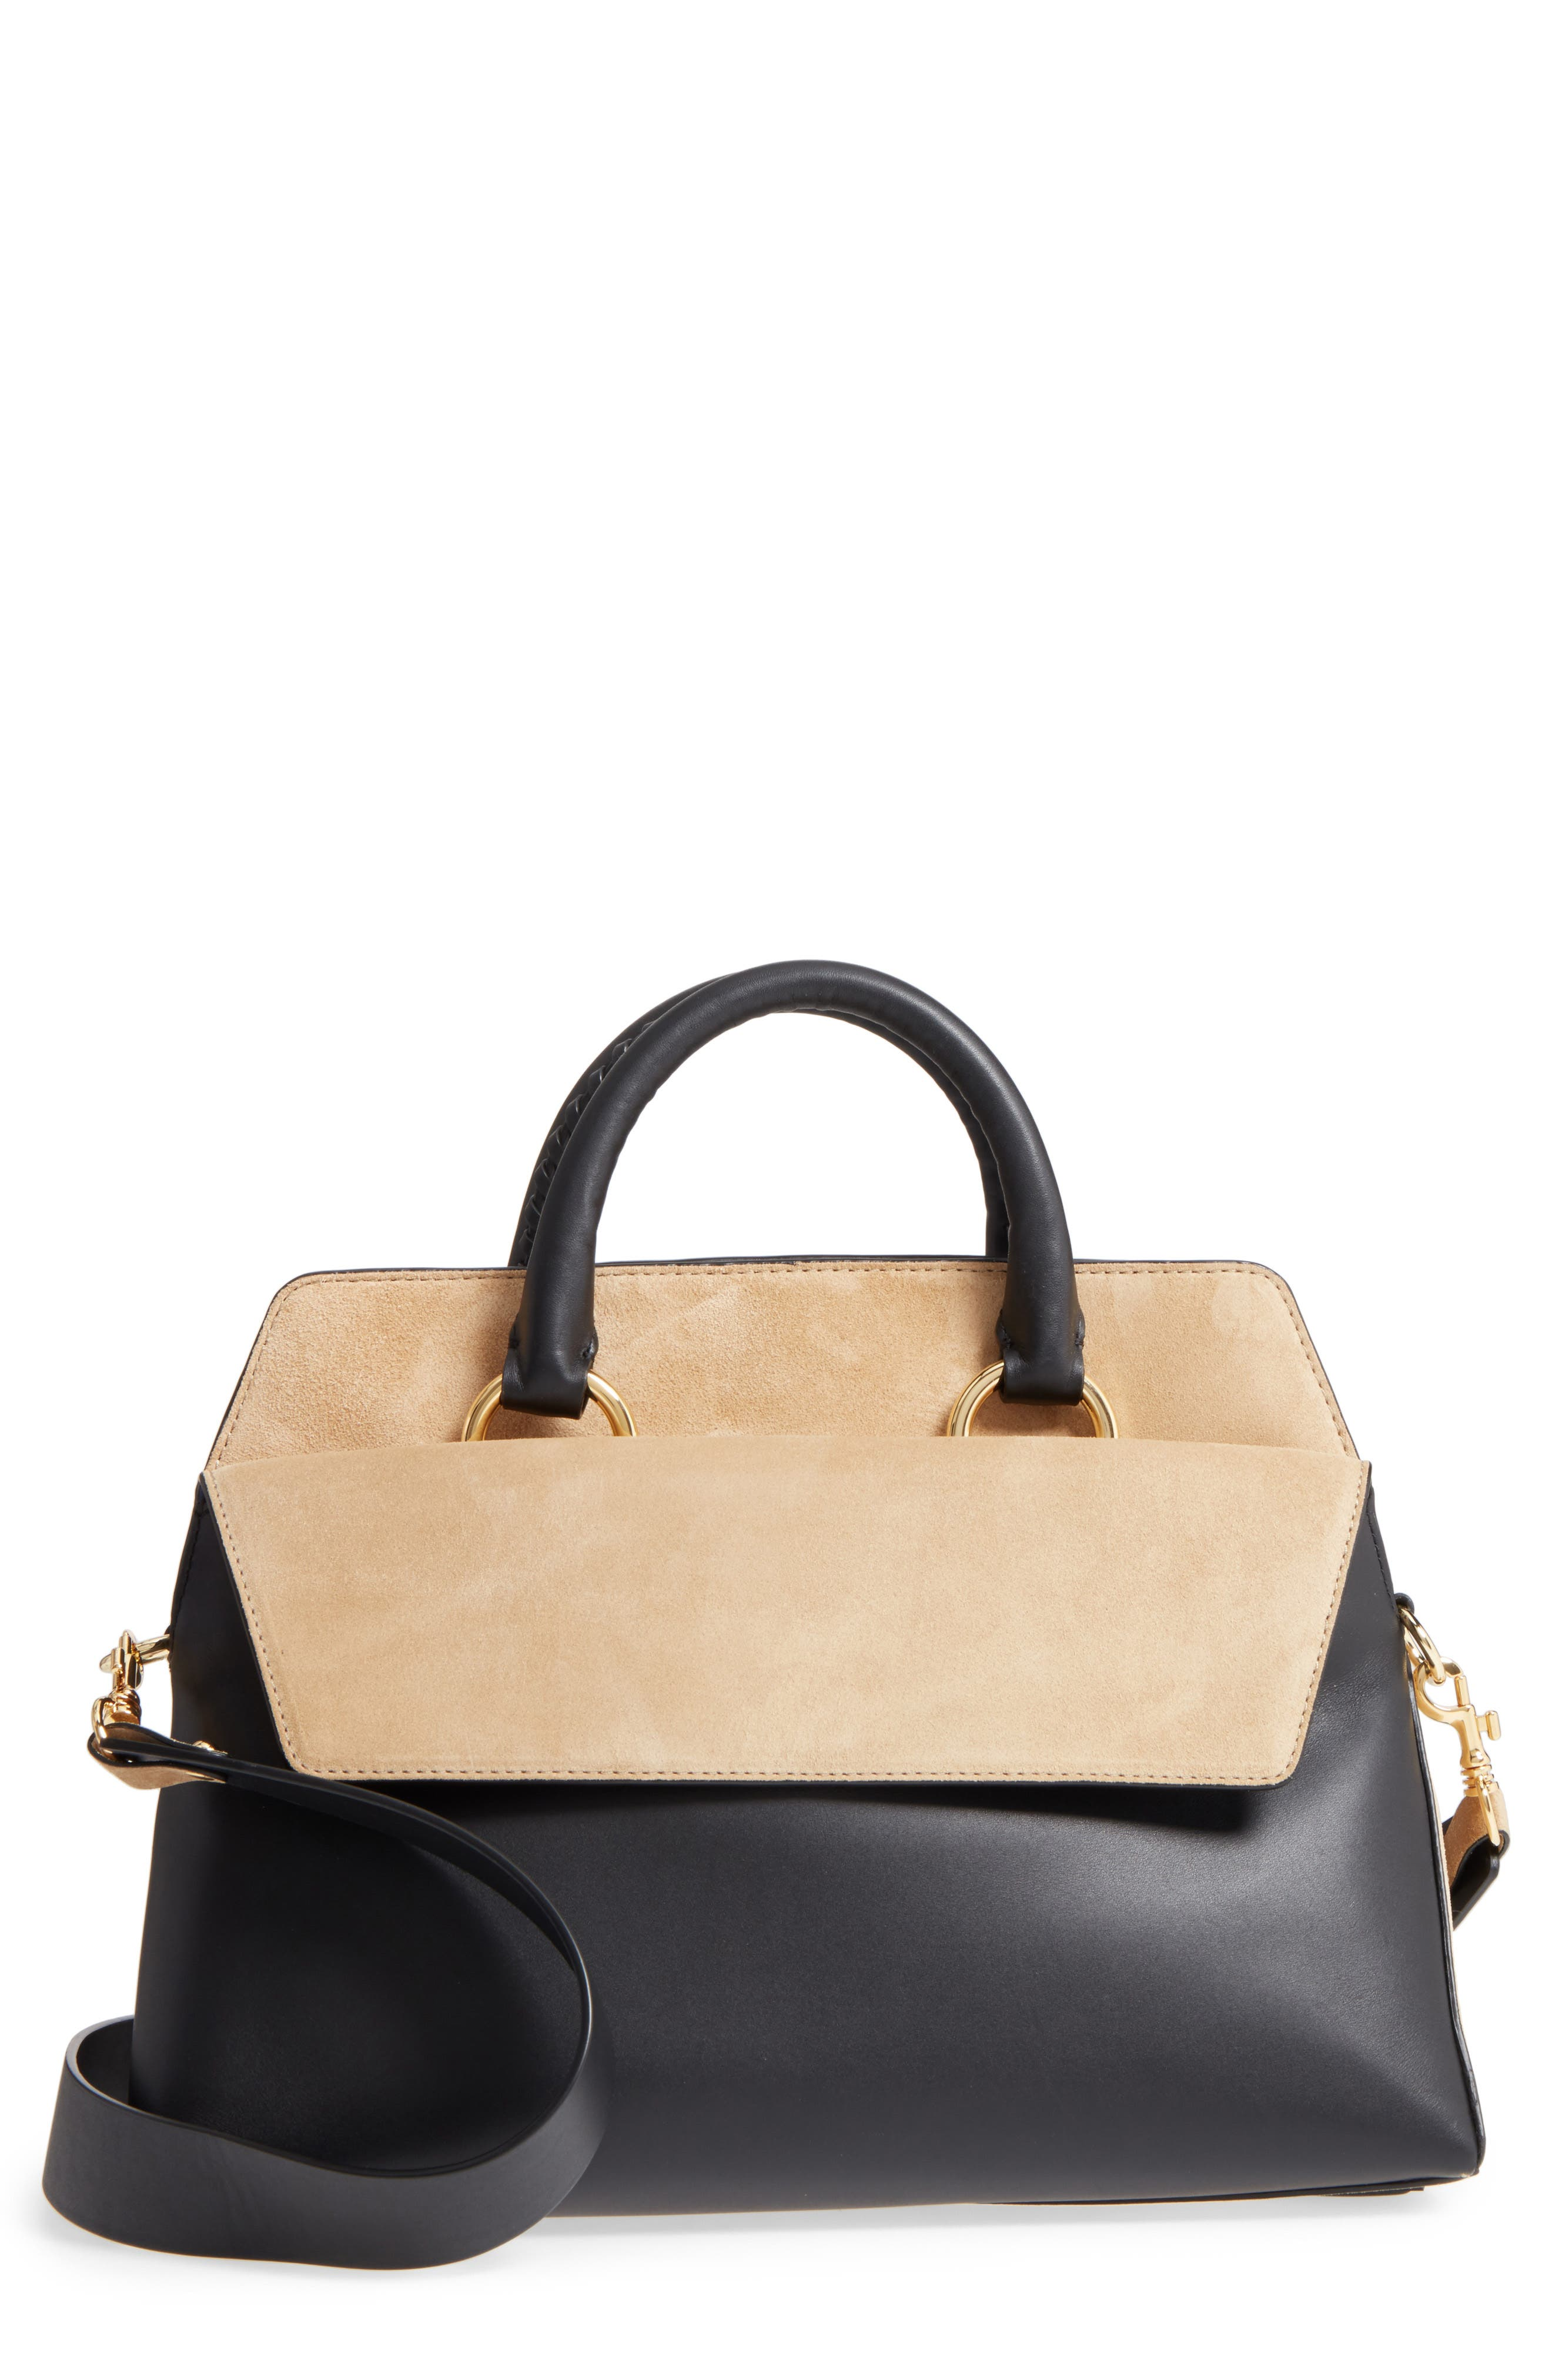 Alternate Image 1 Selected - Diane von Furstenberg Large Leather & Suede Satchel